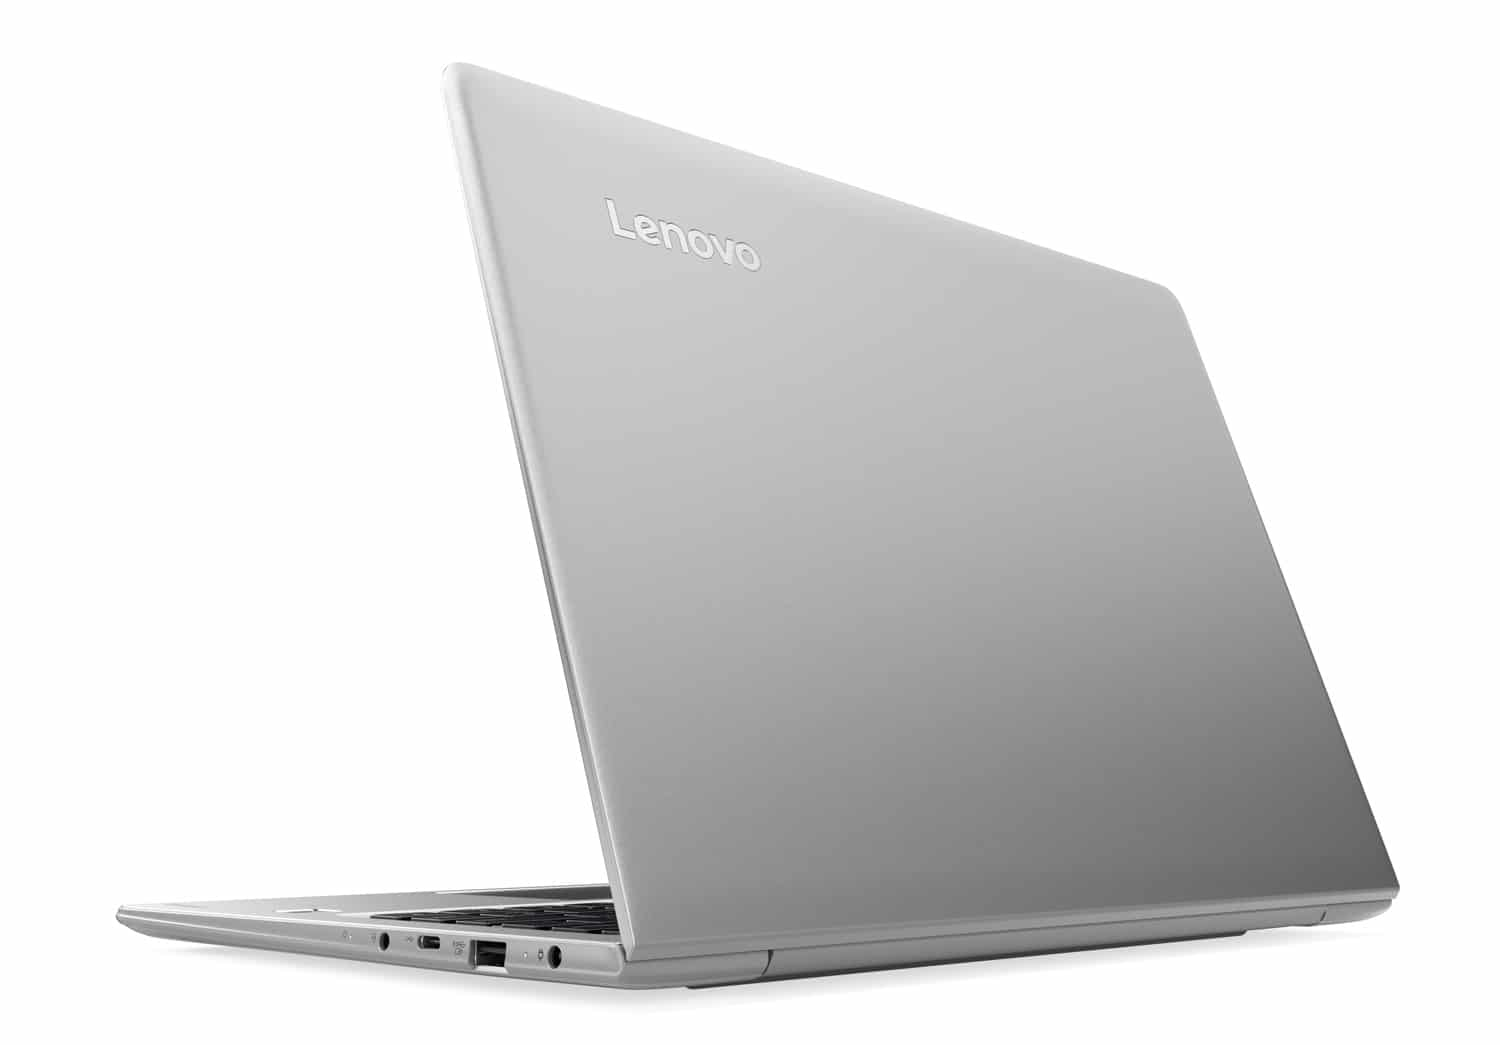 Lenovo Ideapad 710S Plus-13ISK, Ultrabook IPS 940MX i7 SSD 512 (839€)